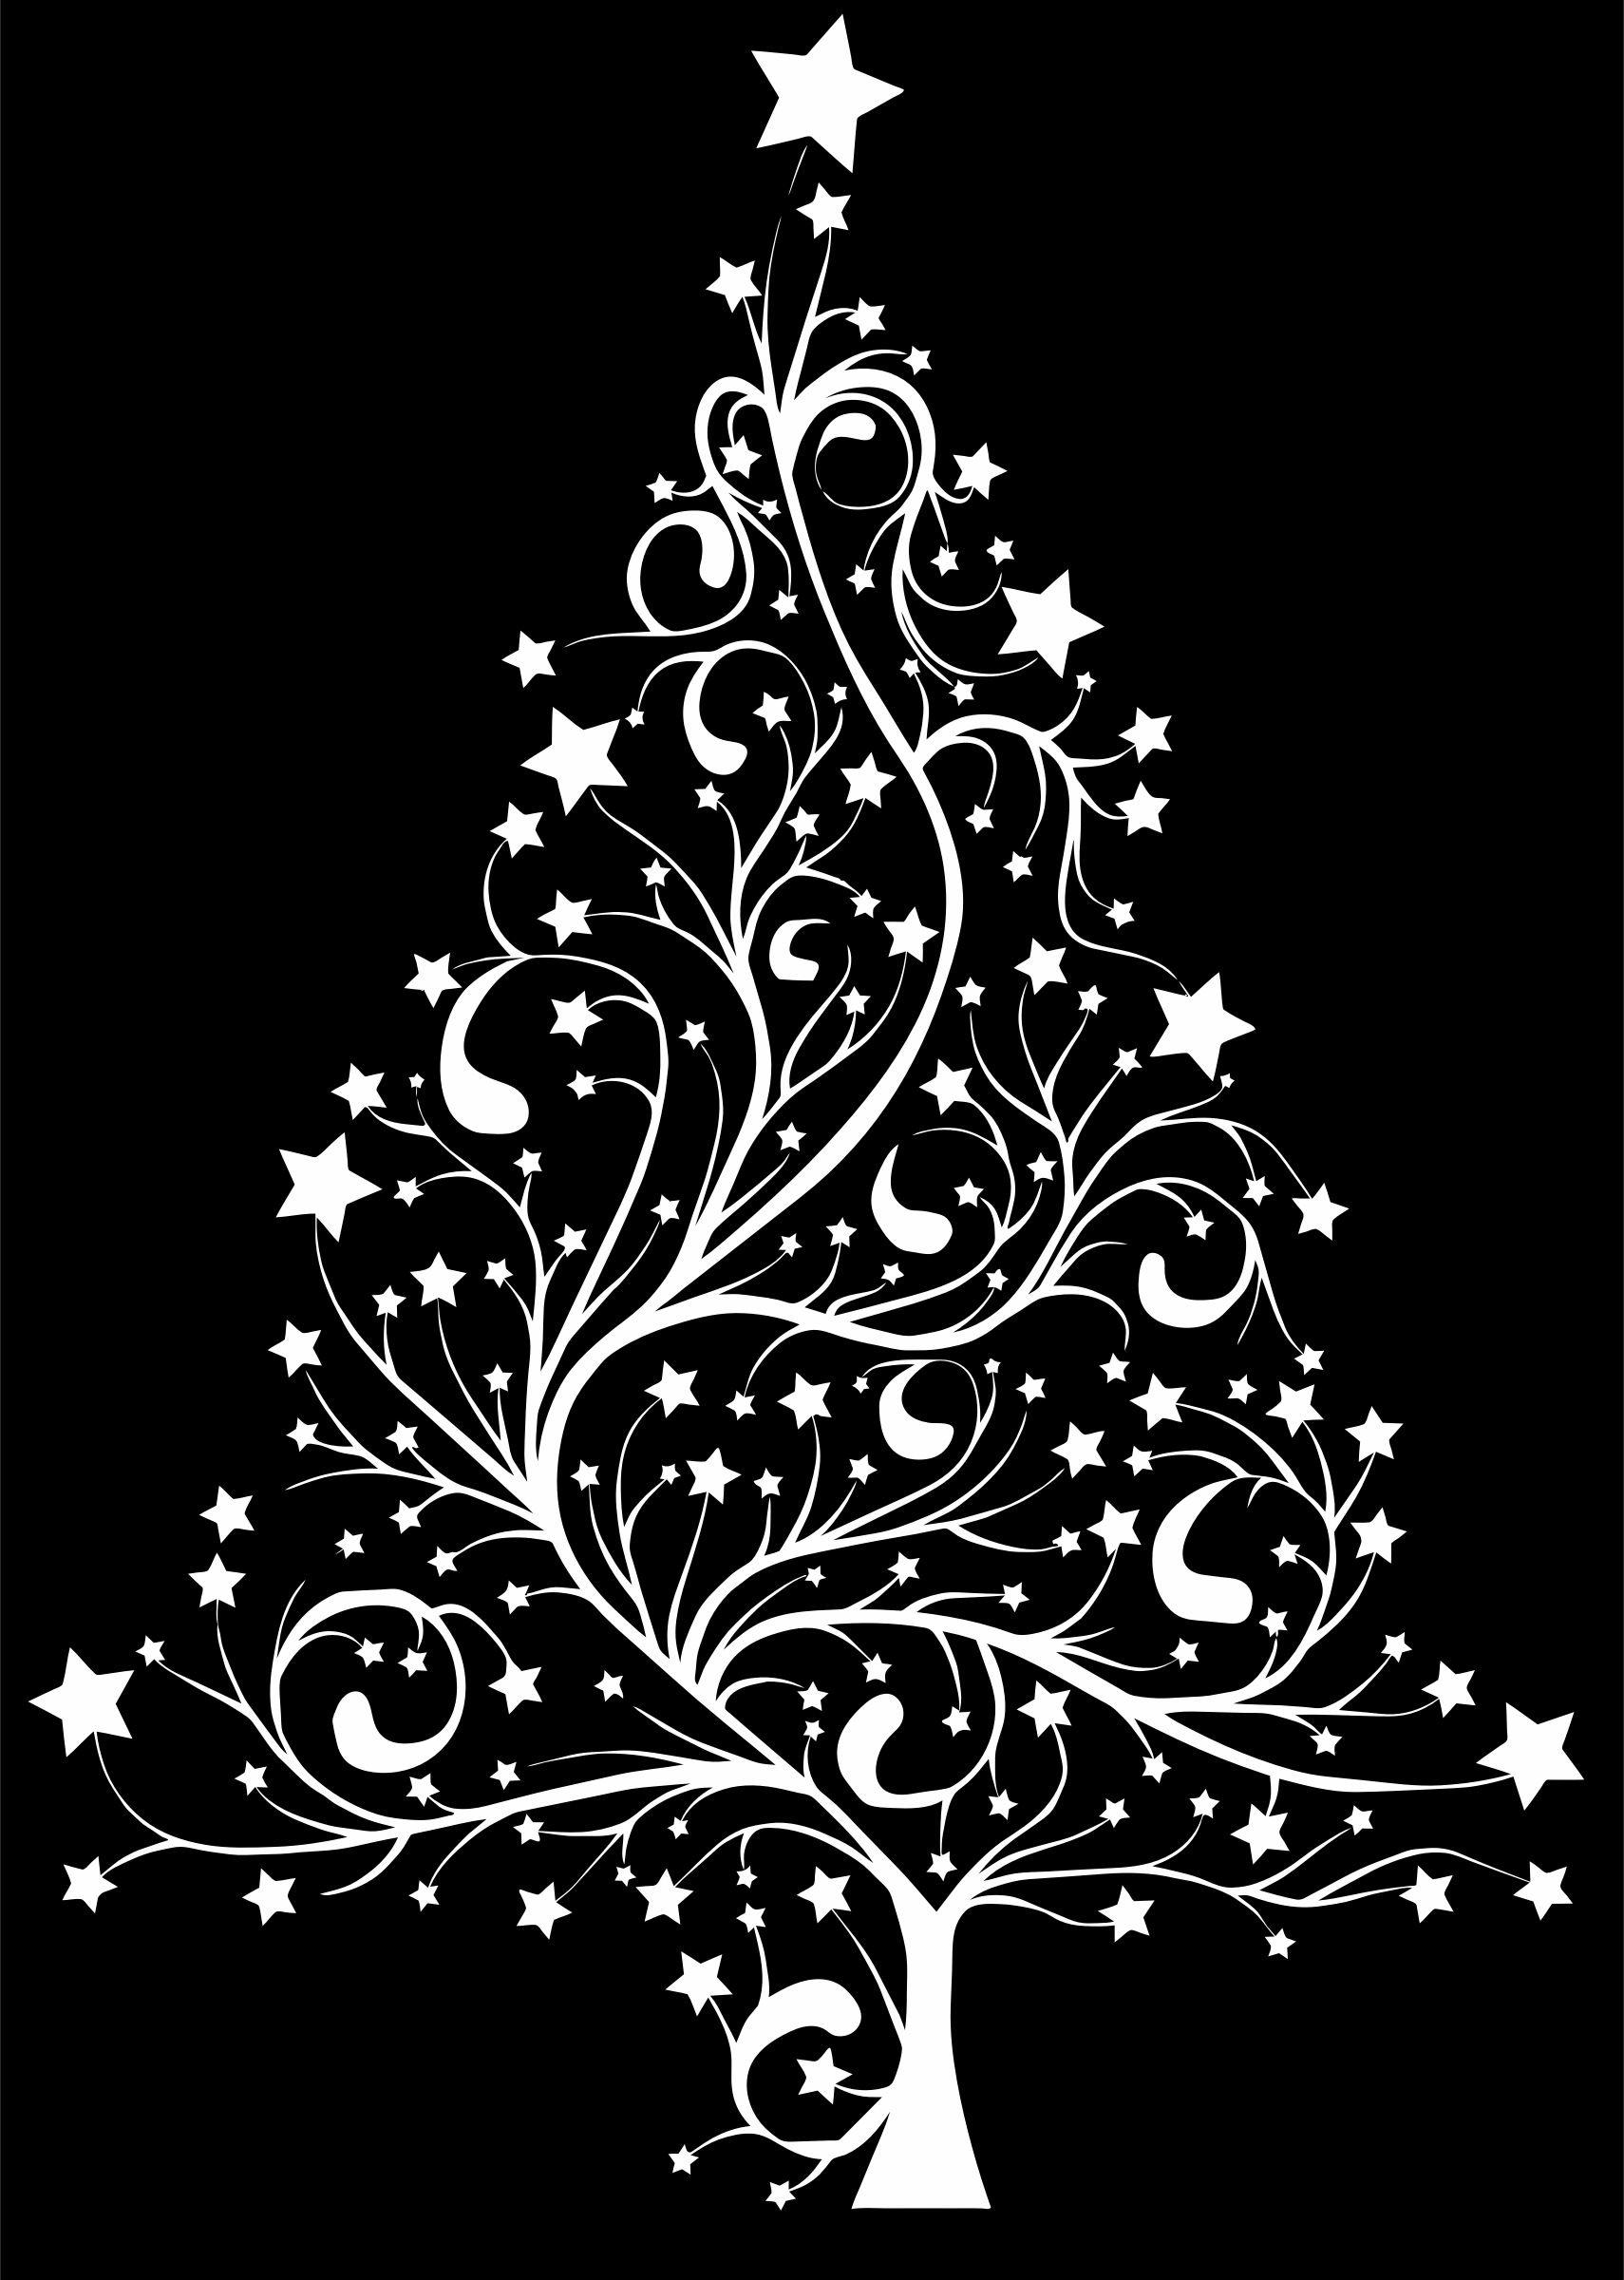 Starry Christmas Tree by GDJ